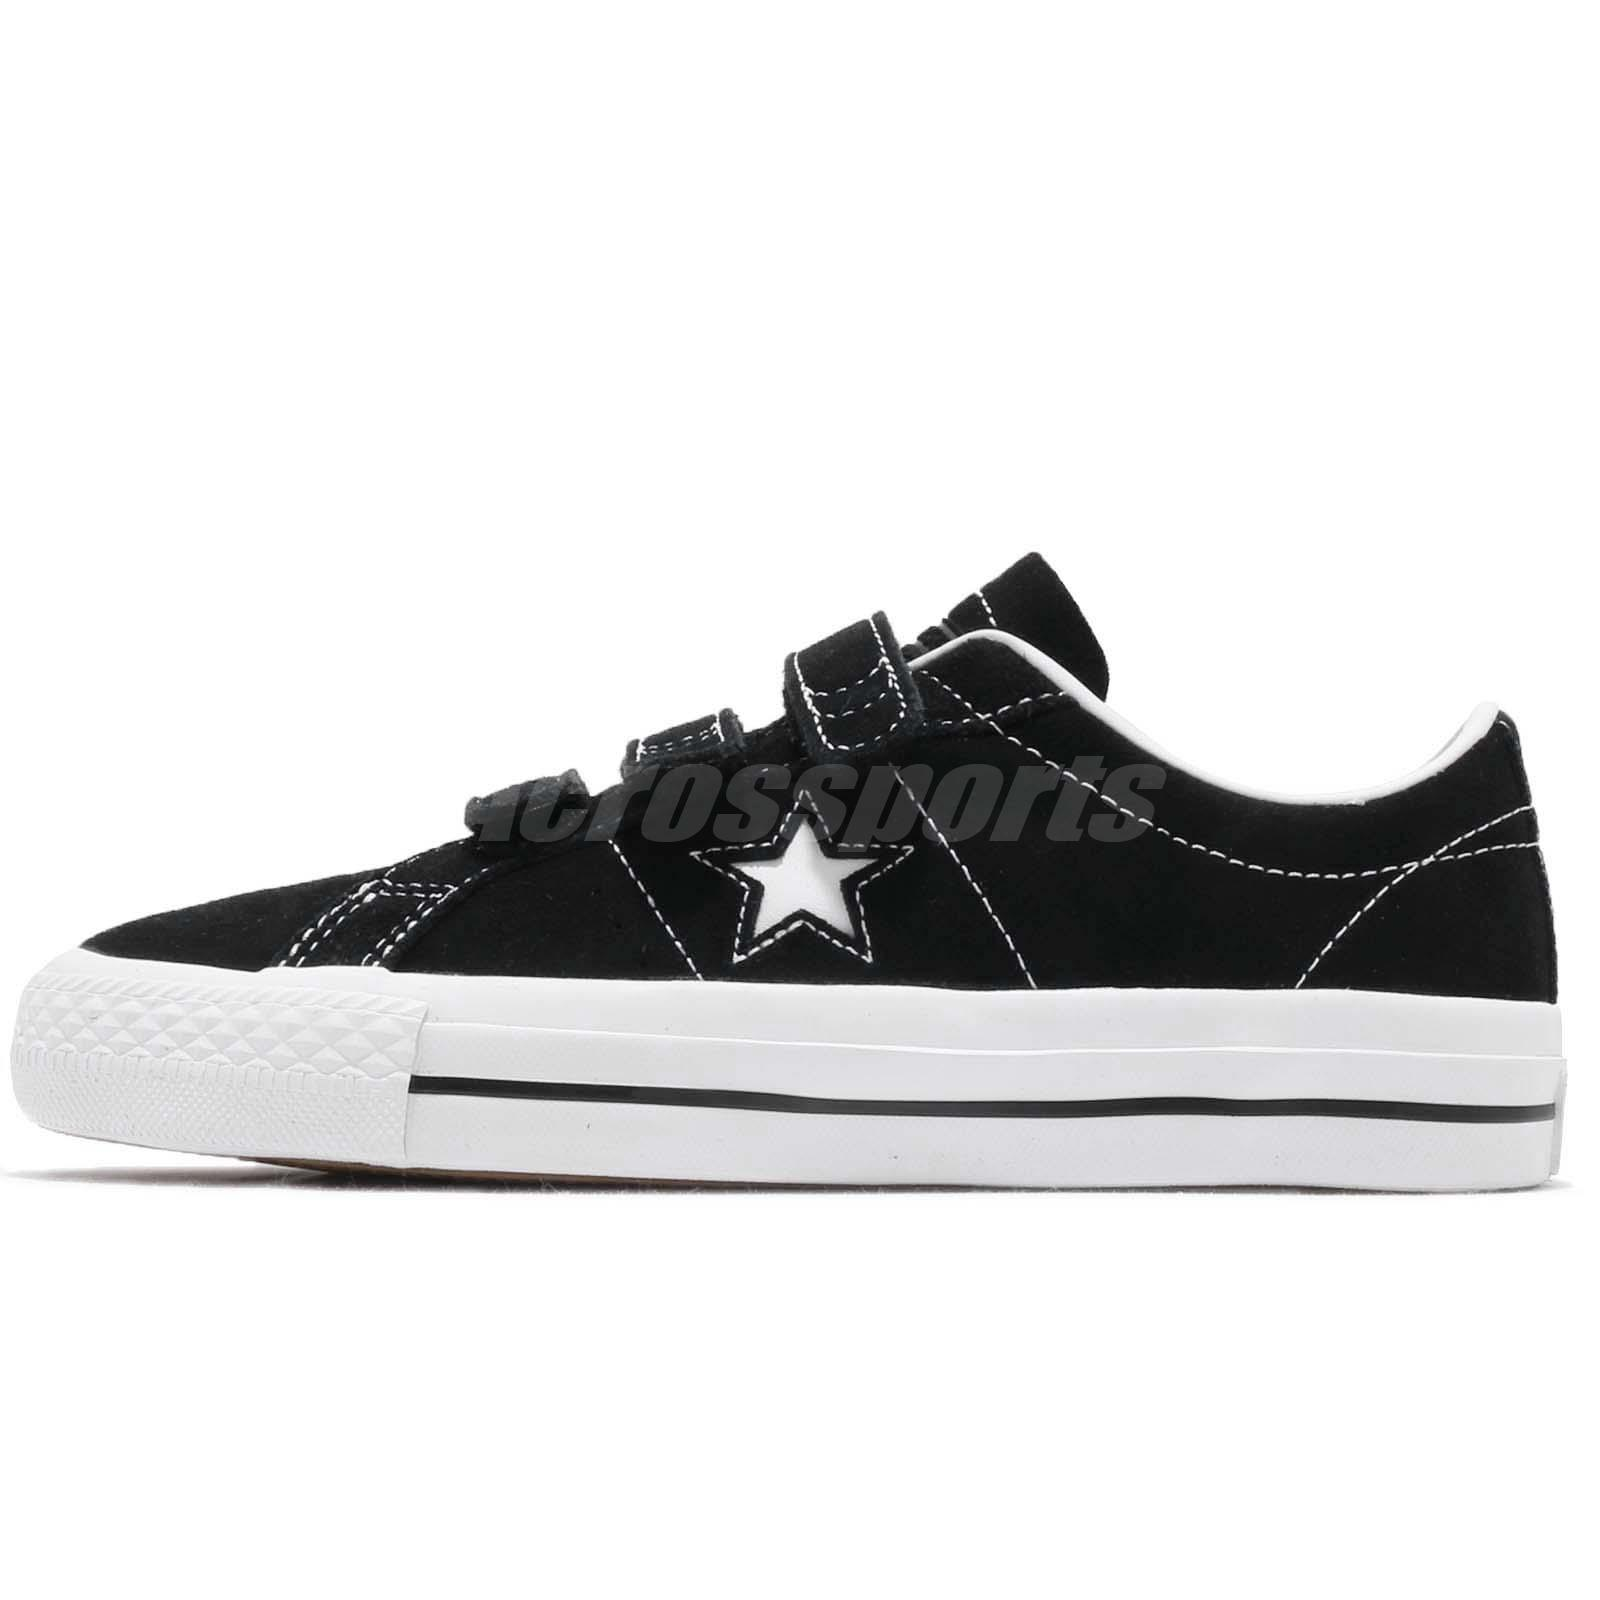 a9c4e683ce8 Converse One Star Pro 3V OX Black White Men Women Skate Boarding Shoes  162518C